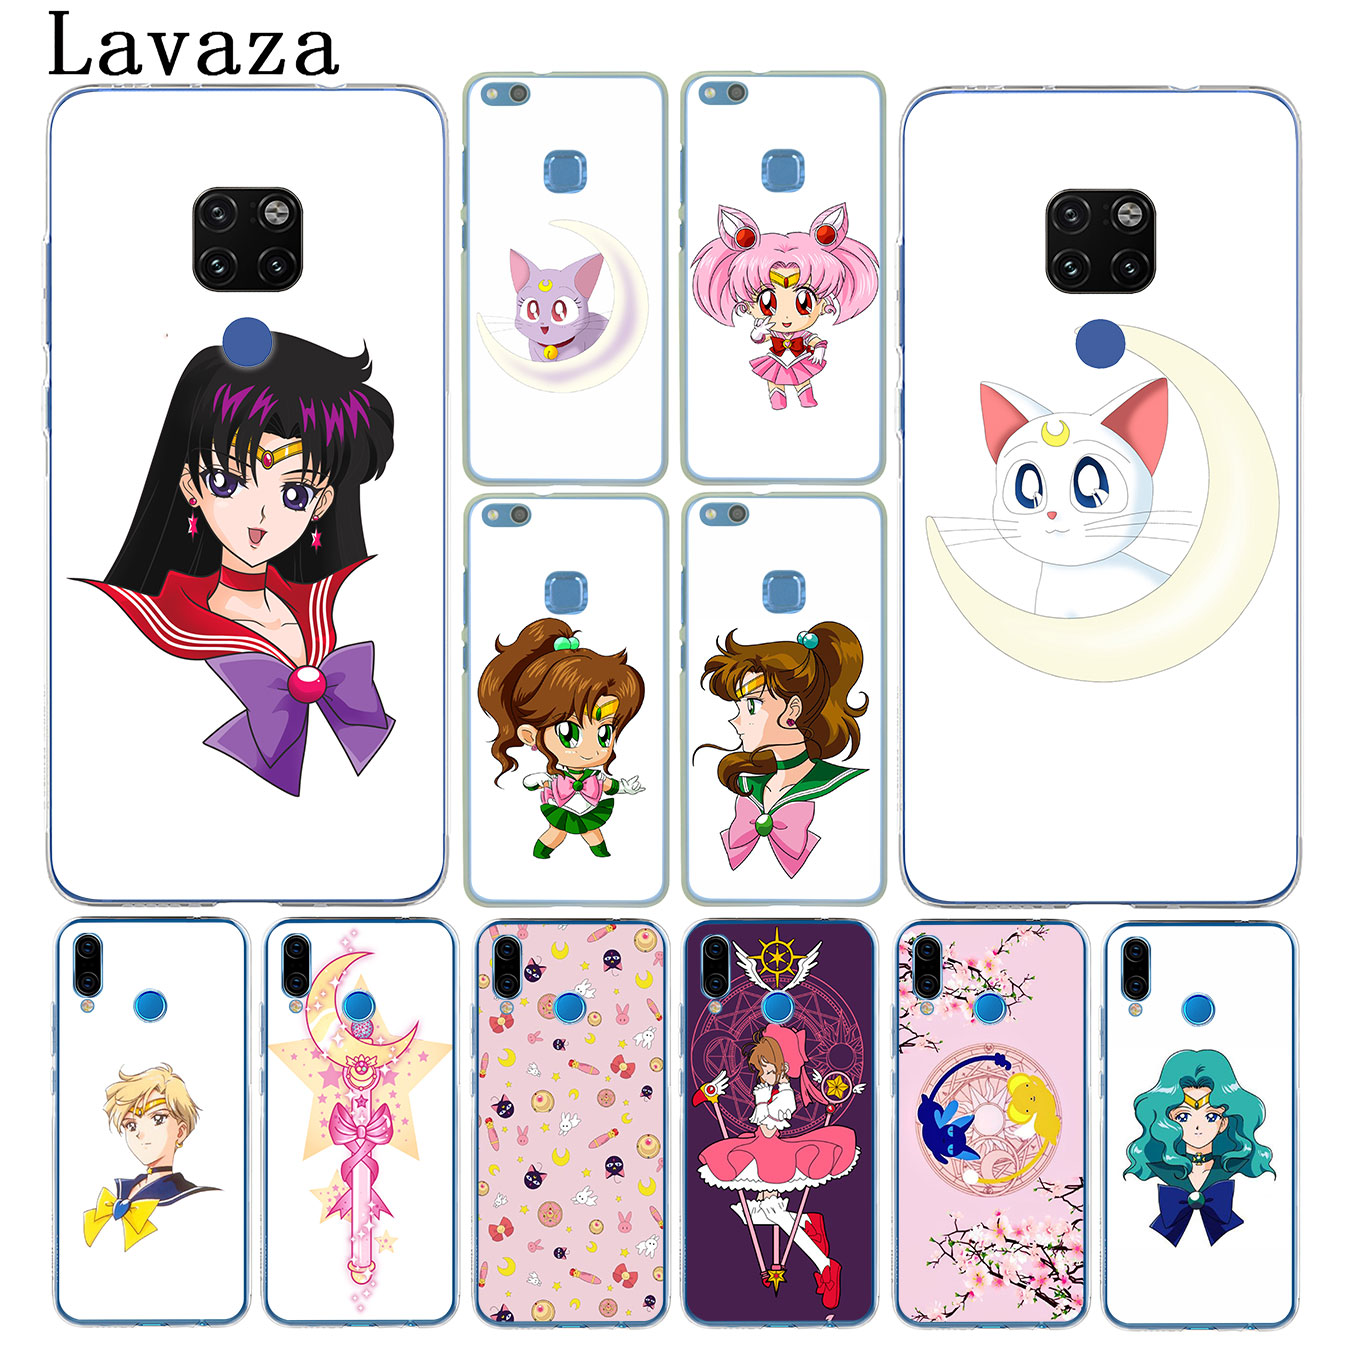 Lovely Lavaza Sailor Moon Cartoon Hard Phone Case For Huawei Mate 20 P20 Pro 10 Lite For Huawei Nova 4 3i 3 2i Lite 2017 Cover Careful Calculation And Strict Budgeting Phone Bags & Cases Cellphones & Telecommunications